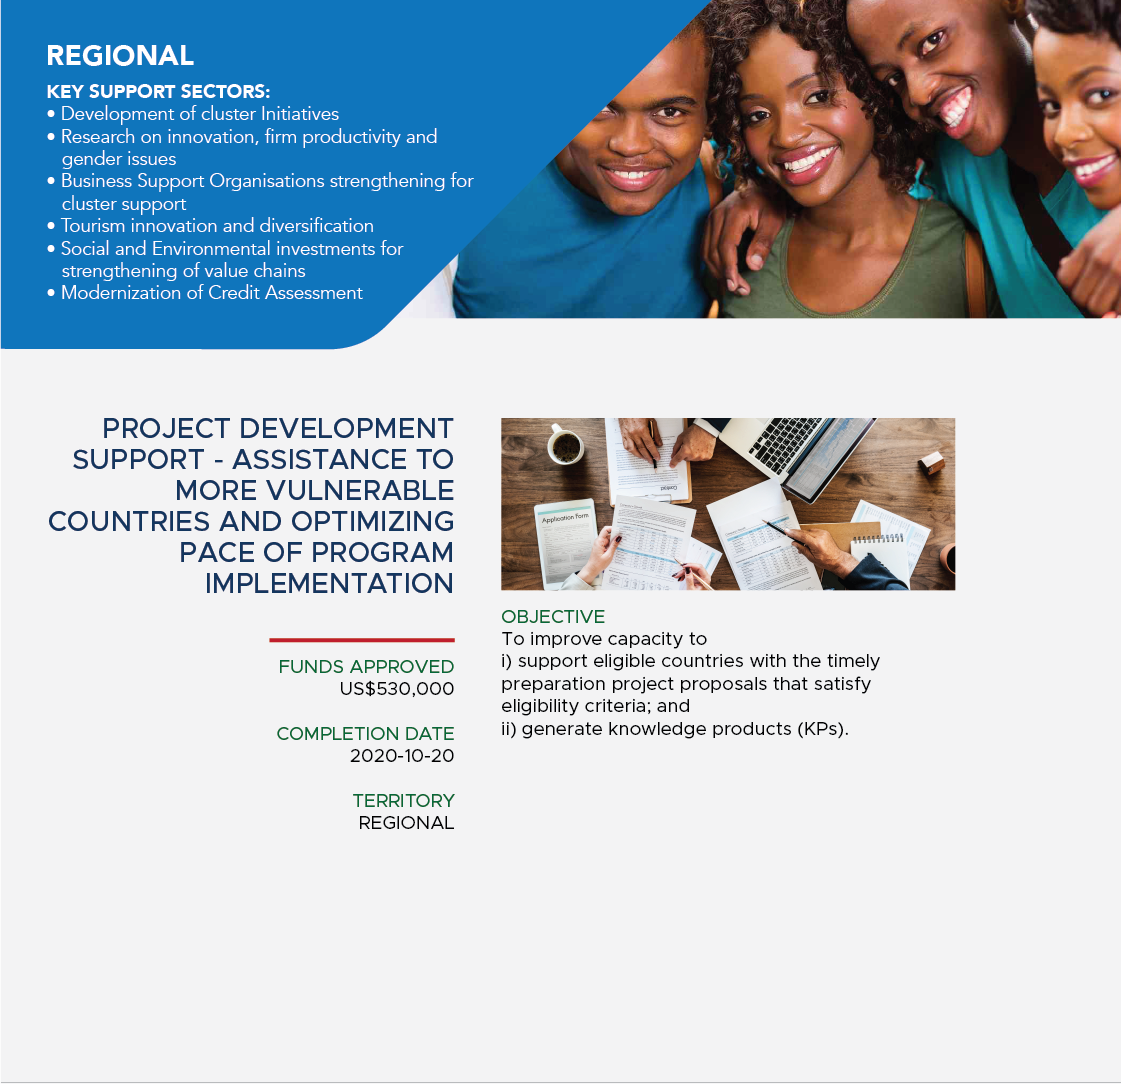 Project development support – assistance to more vulnerable countries and optimizing pace of program implemenetation